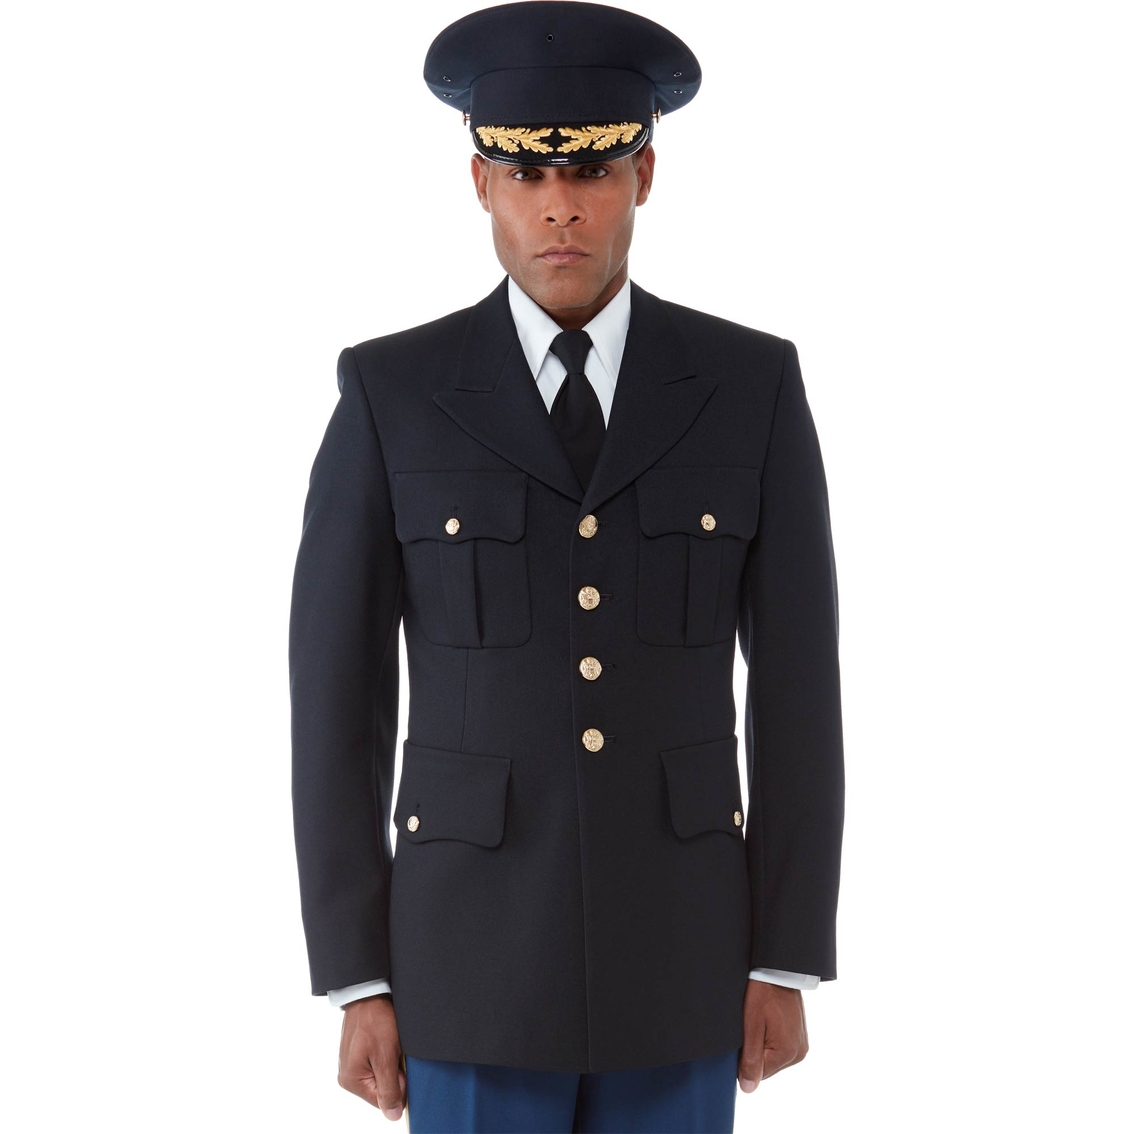 Officer Blue Asu Coat Ab 450 | Jackets | Military | Shop The Exchange